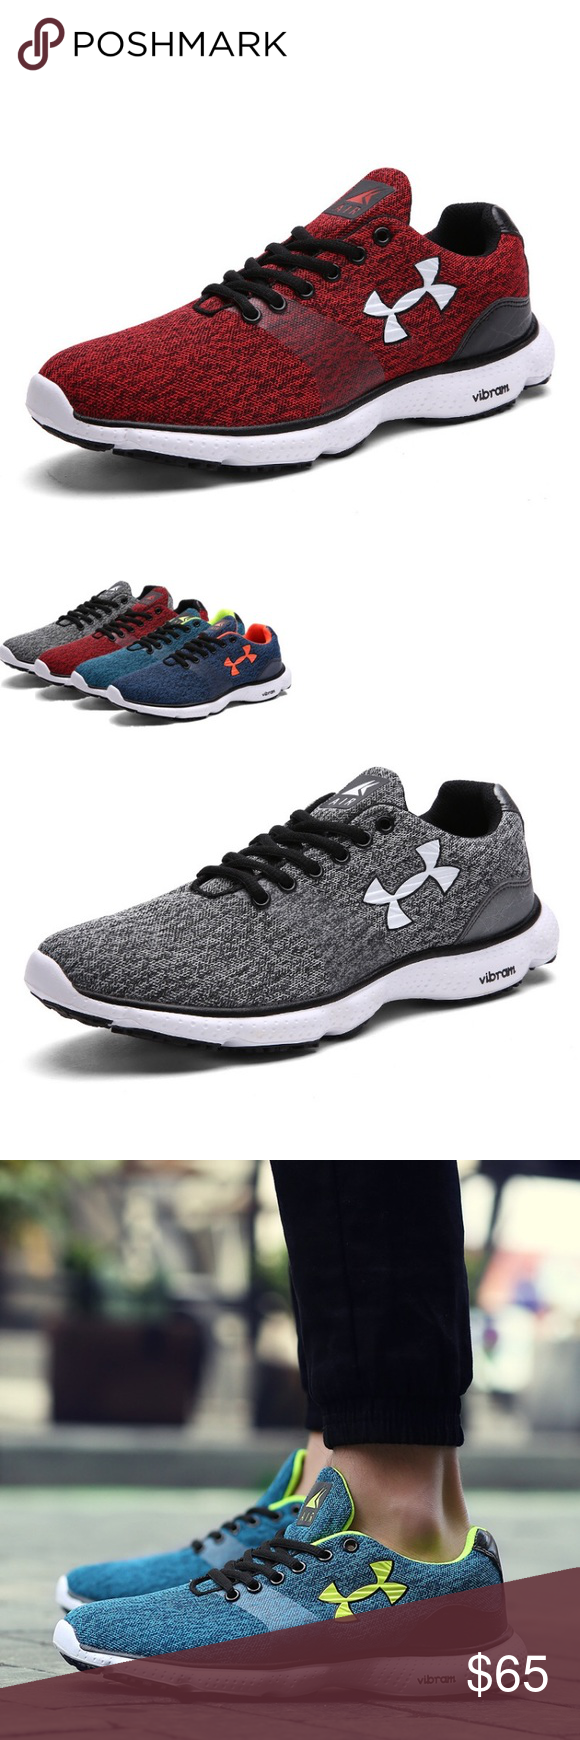 Under armor vibram shoes VARIOUS SIZES AND COLORS. MAKE SURE TO CHECK THE SIZING  CHART